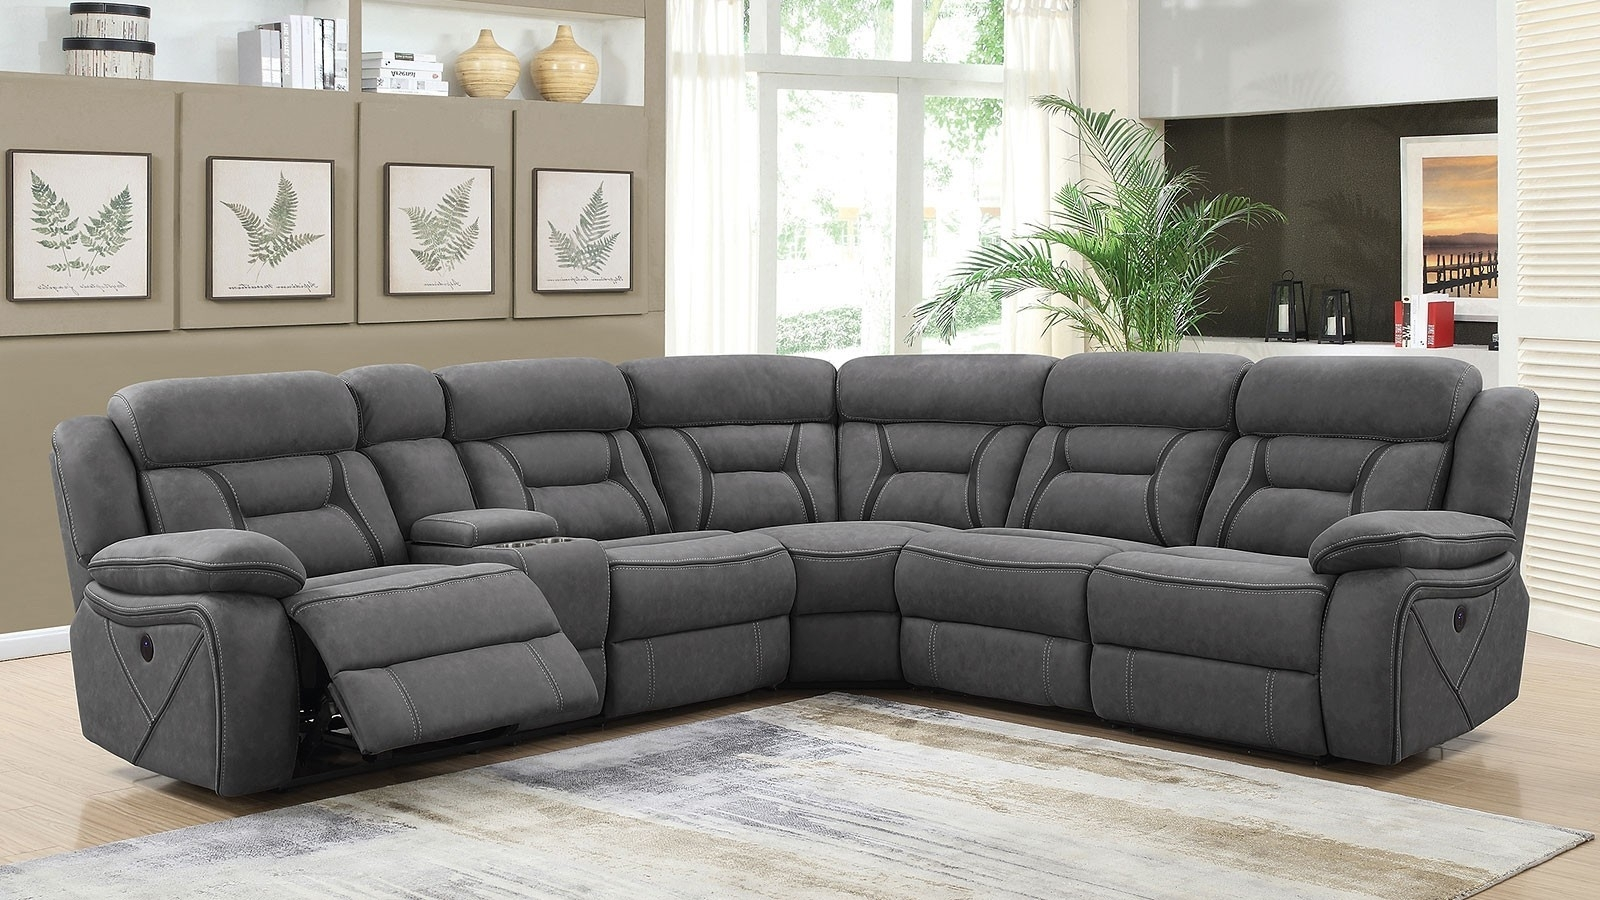 Grey Reclining Sectional Camargue Power Coaster Furniture 600370 throughout Denali Charcoal Grey 6 Piece Reclining Sectionals With 2 Power Headrests (Image 17 of 30)